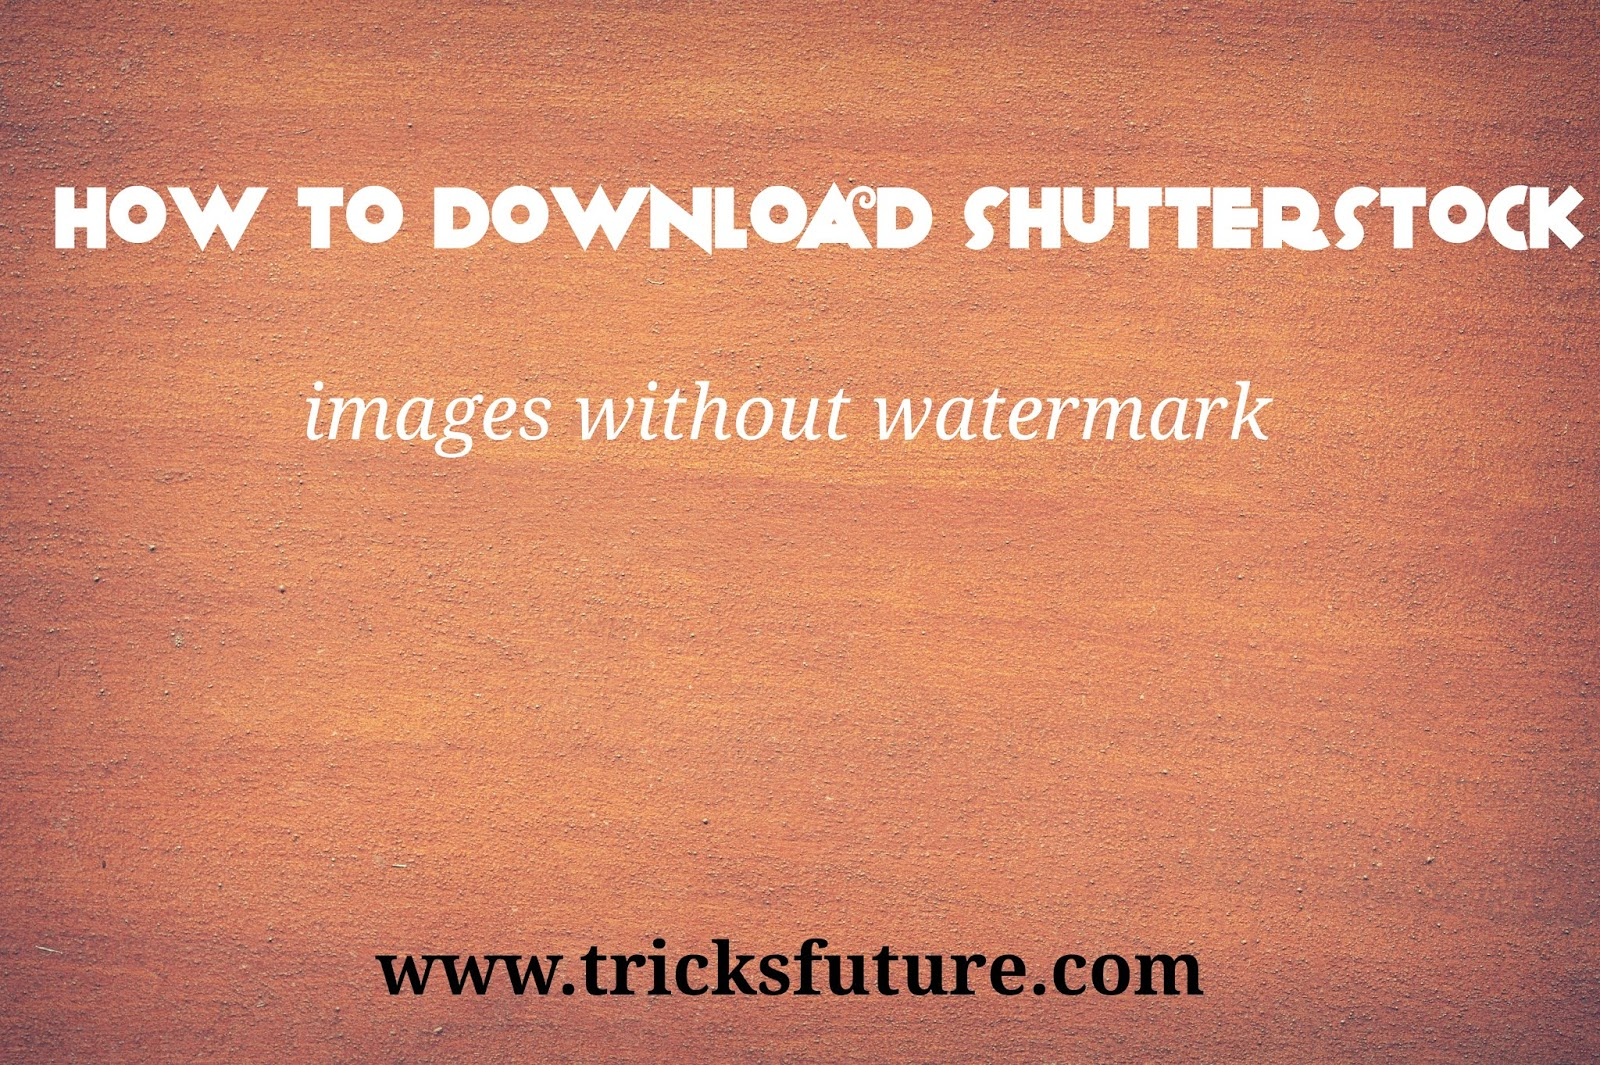 How to download Shutterstock images without watermarks - The master mind